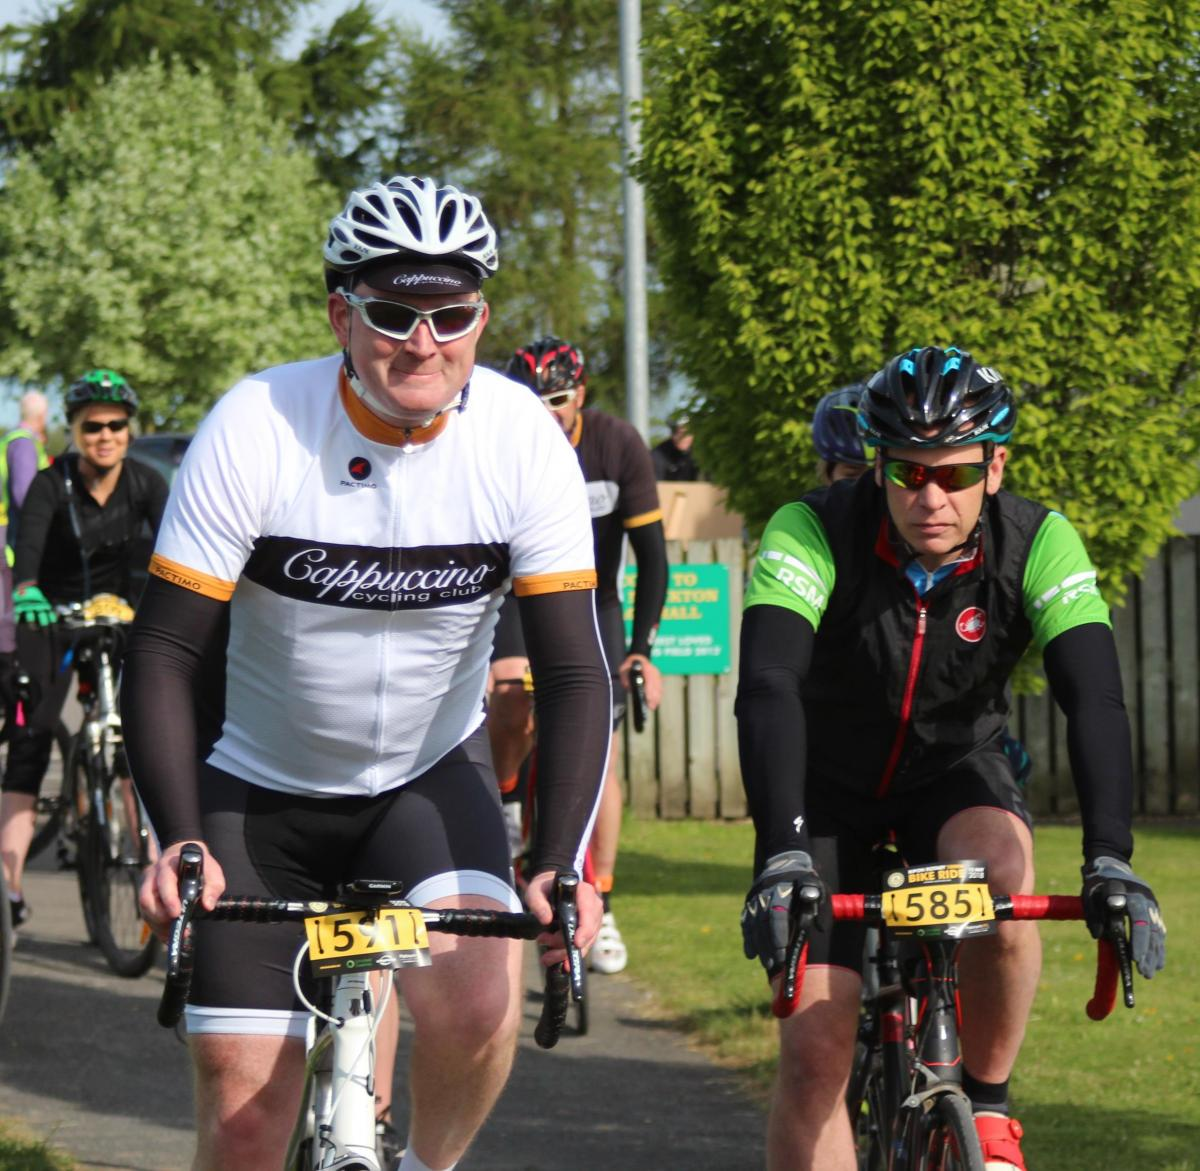 Ripon Rotary Bike Ride 2018 - 14 image